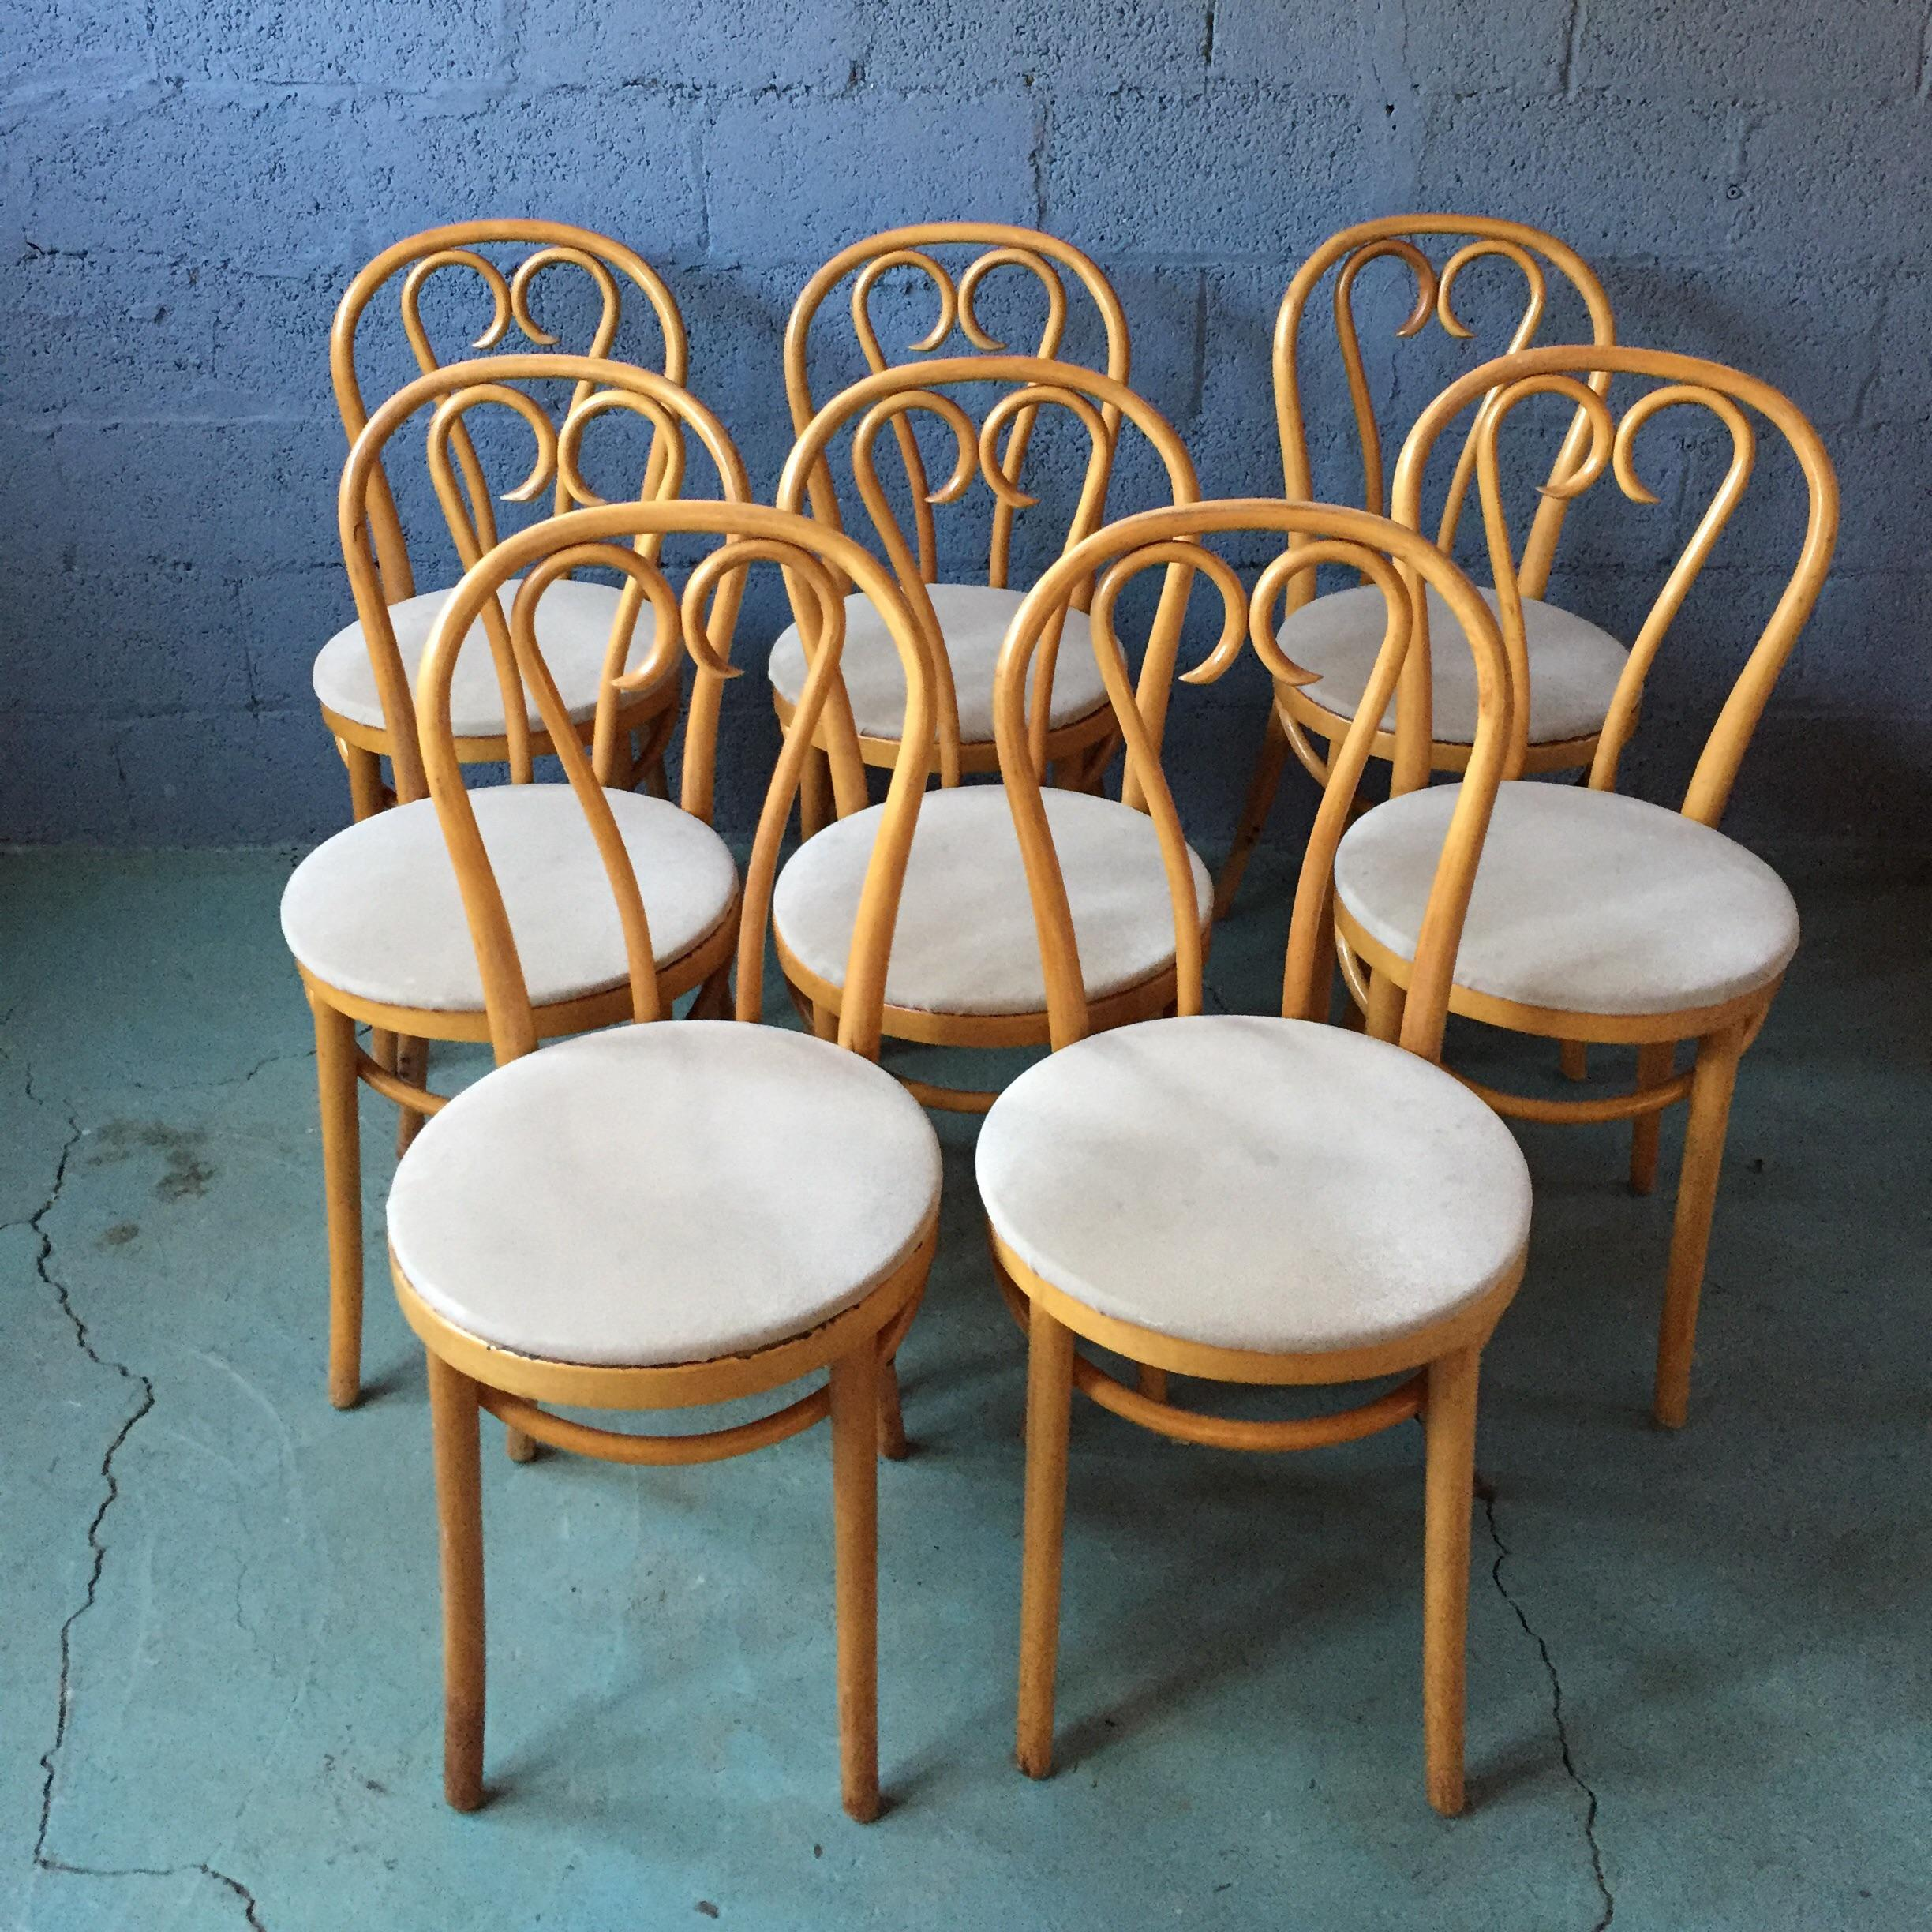 Traditional Pine Dining Table u0026 Bentwood Chairs - Set of 9 - Image 5 of 11 & Traditional Pine Dining Table u0026 Bentwood Chairs - Set of 9   Chairish